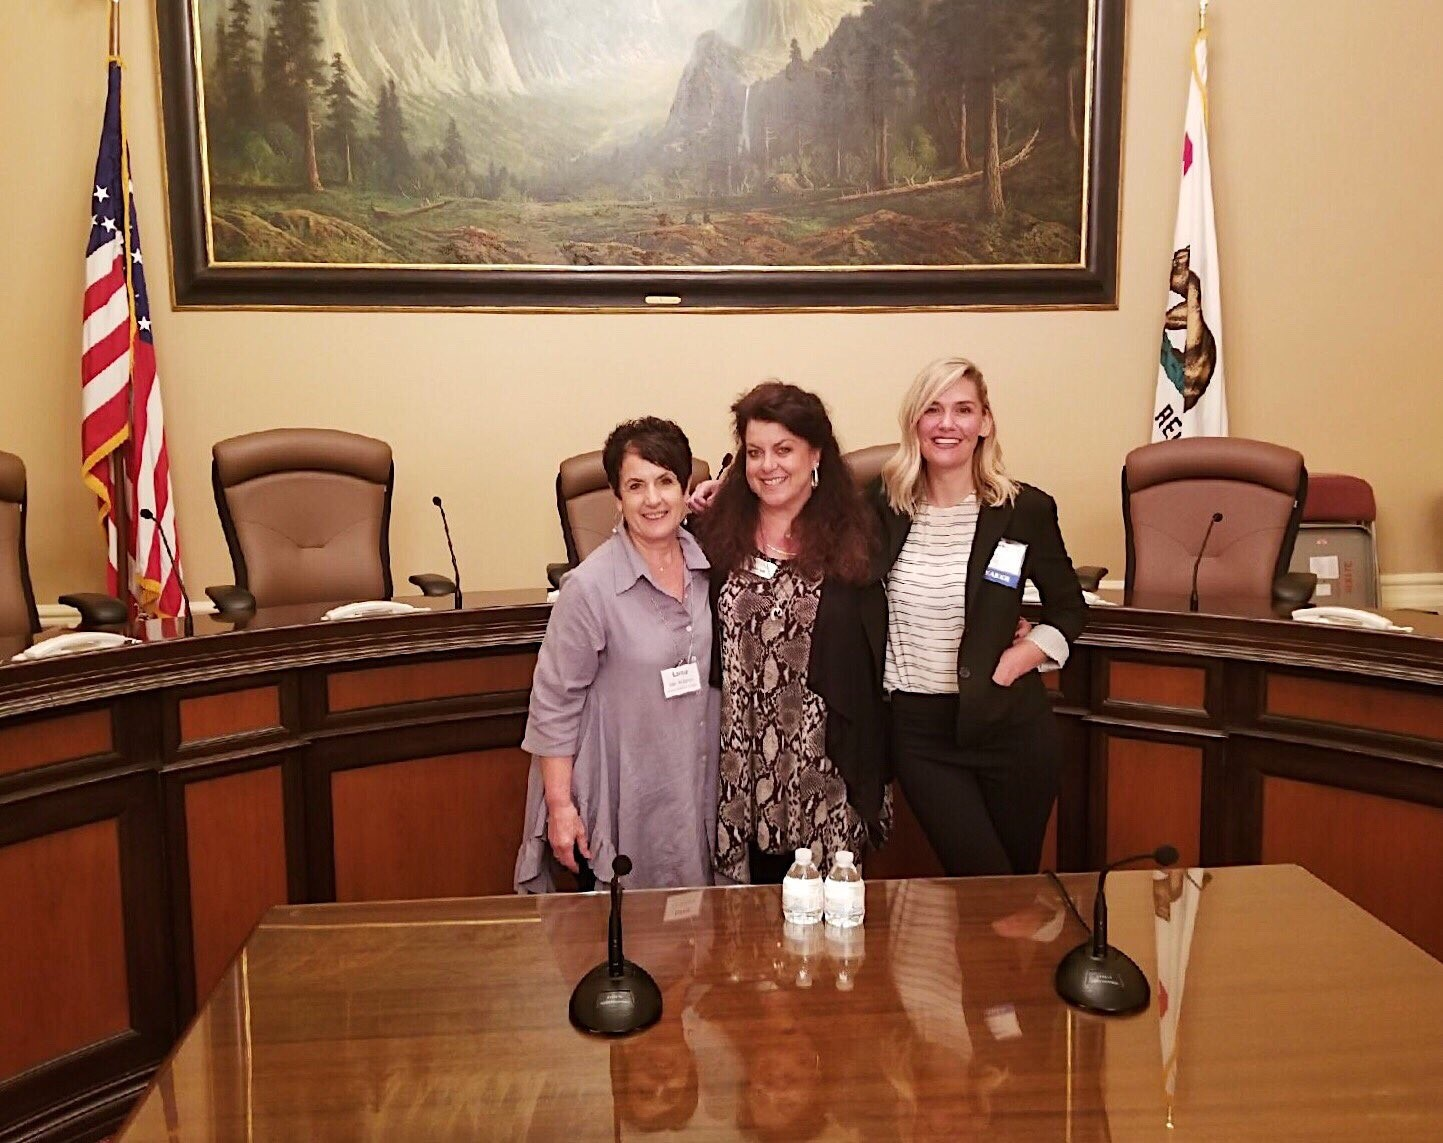 Experienced LTSS advocates Lorna Van Ackeren, Debbie Toth and Amber Christ walked the halls of the Capitol along with many first-time participants